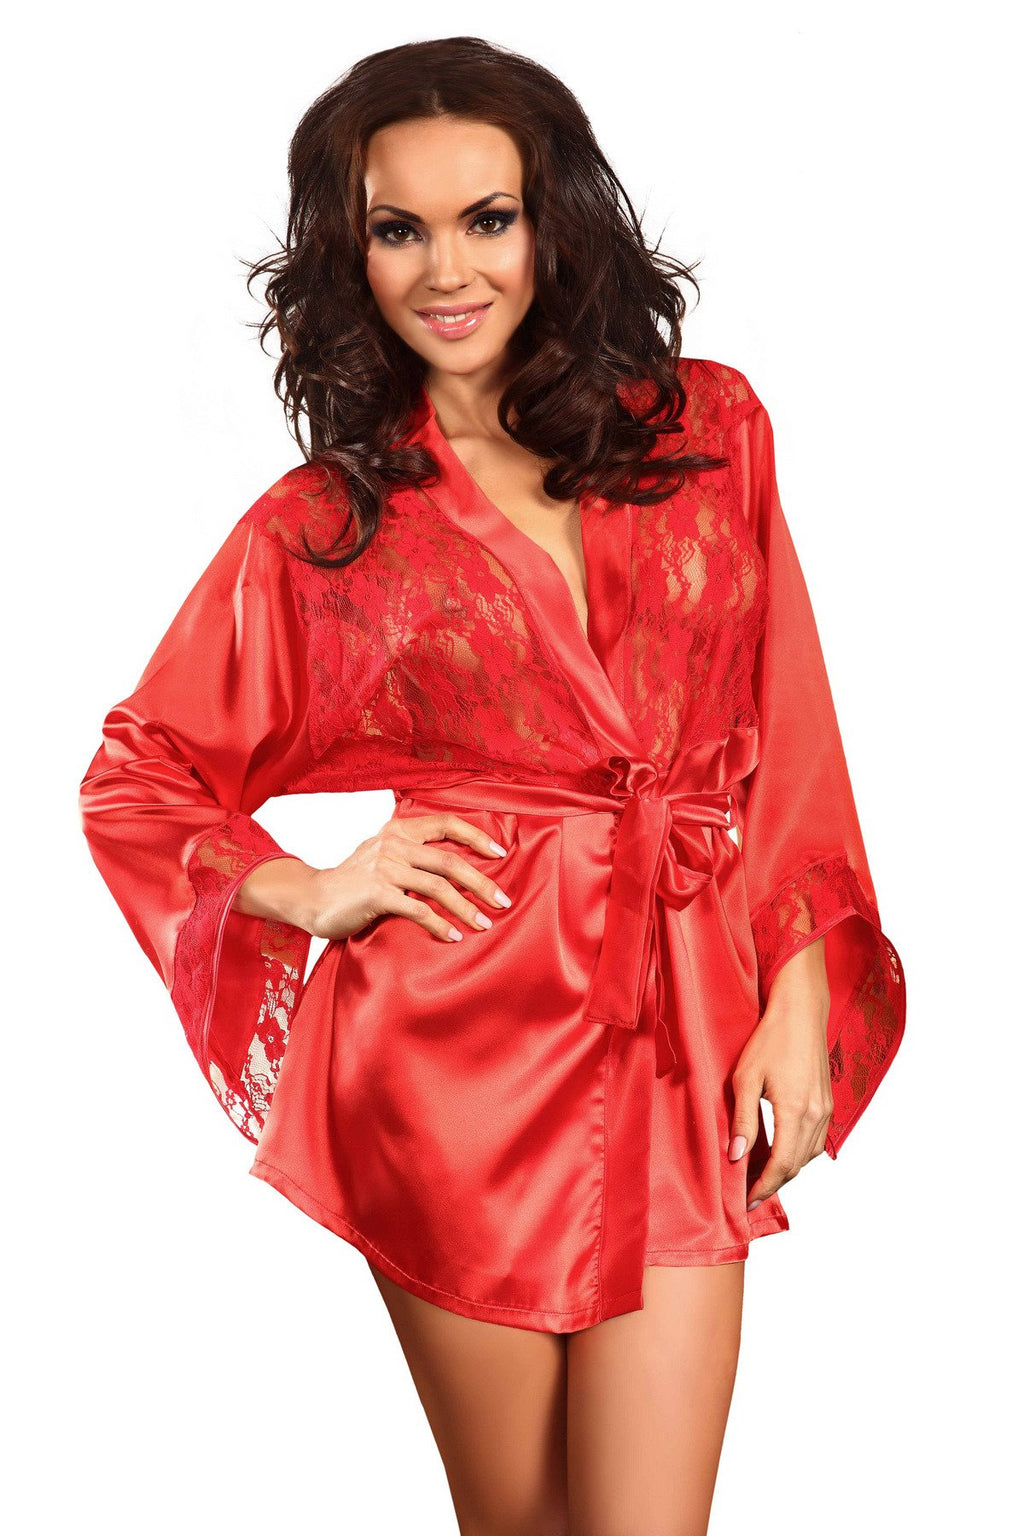 Prilance Shorty Dressing Gown Set Red